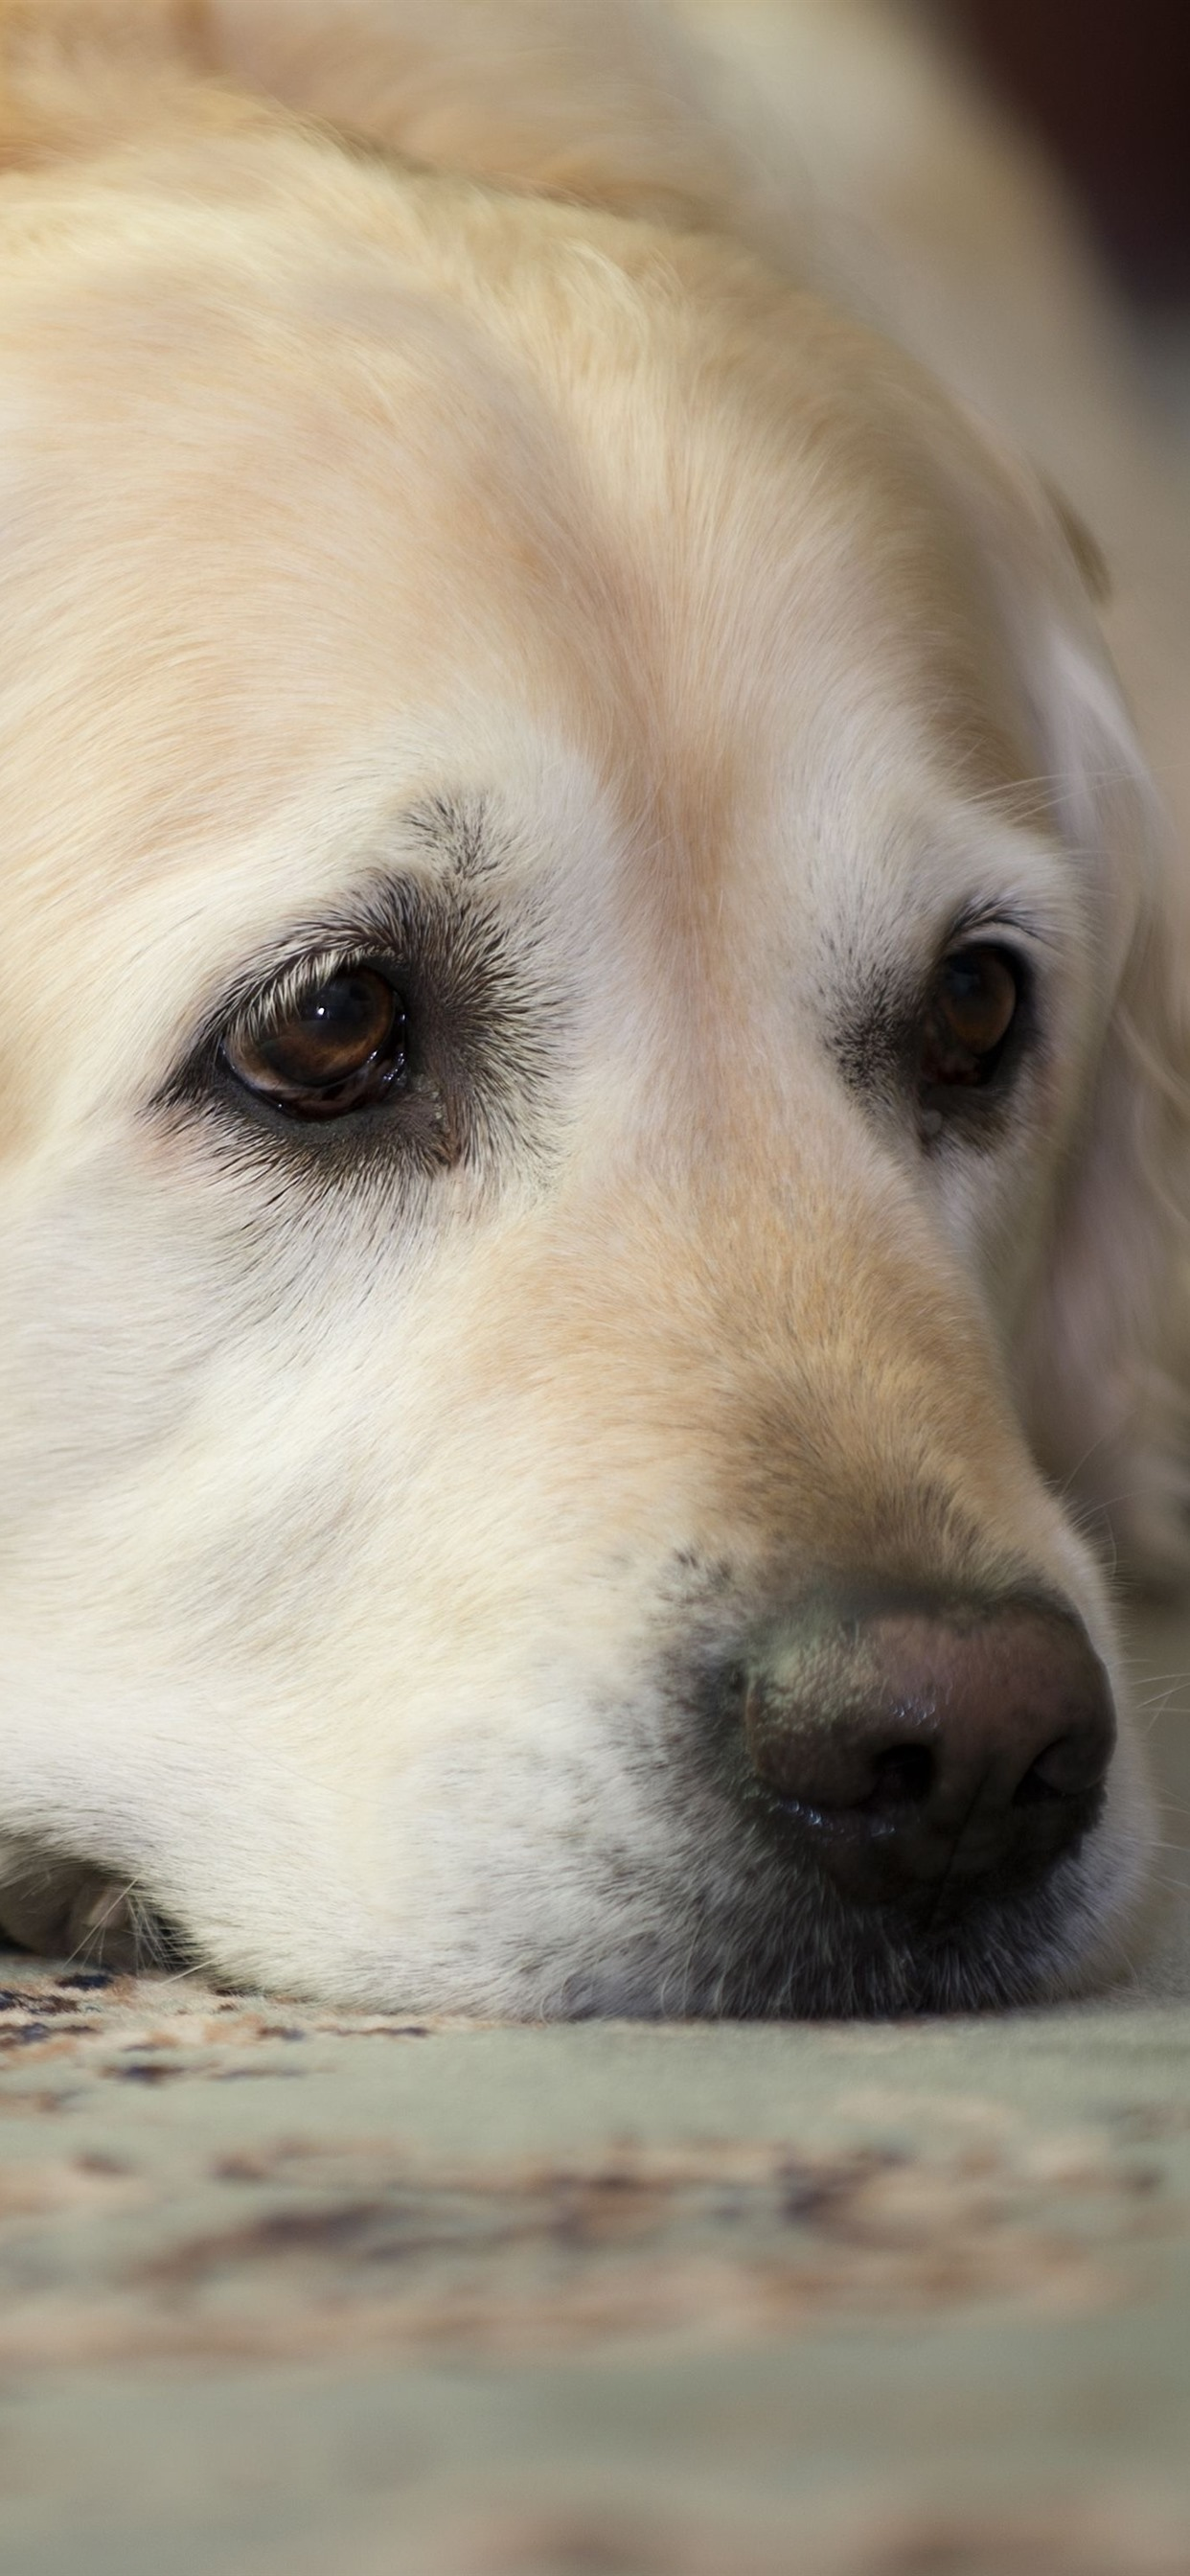 Sadness Golden Retriever 1242x2688 Iphone 11 Pro Xs Max Wallpaper Background Picture Image